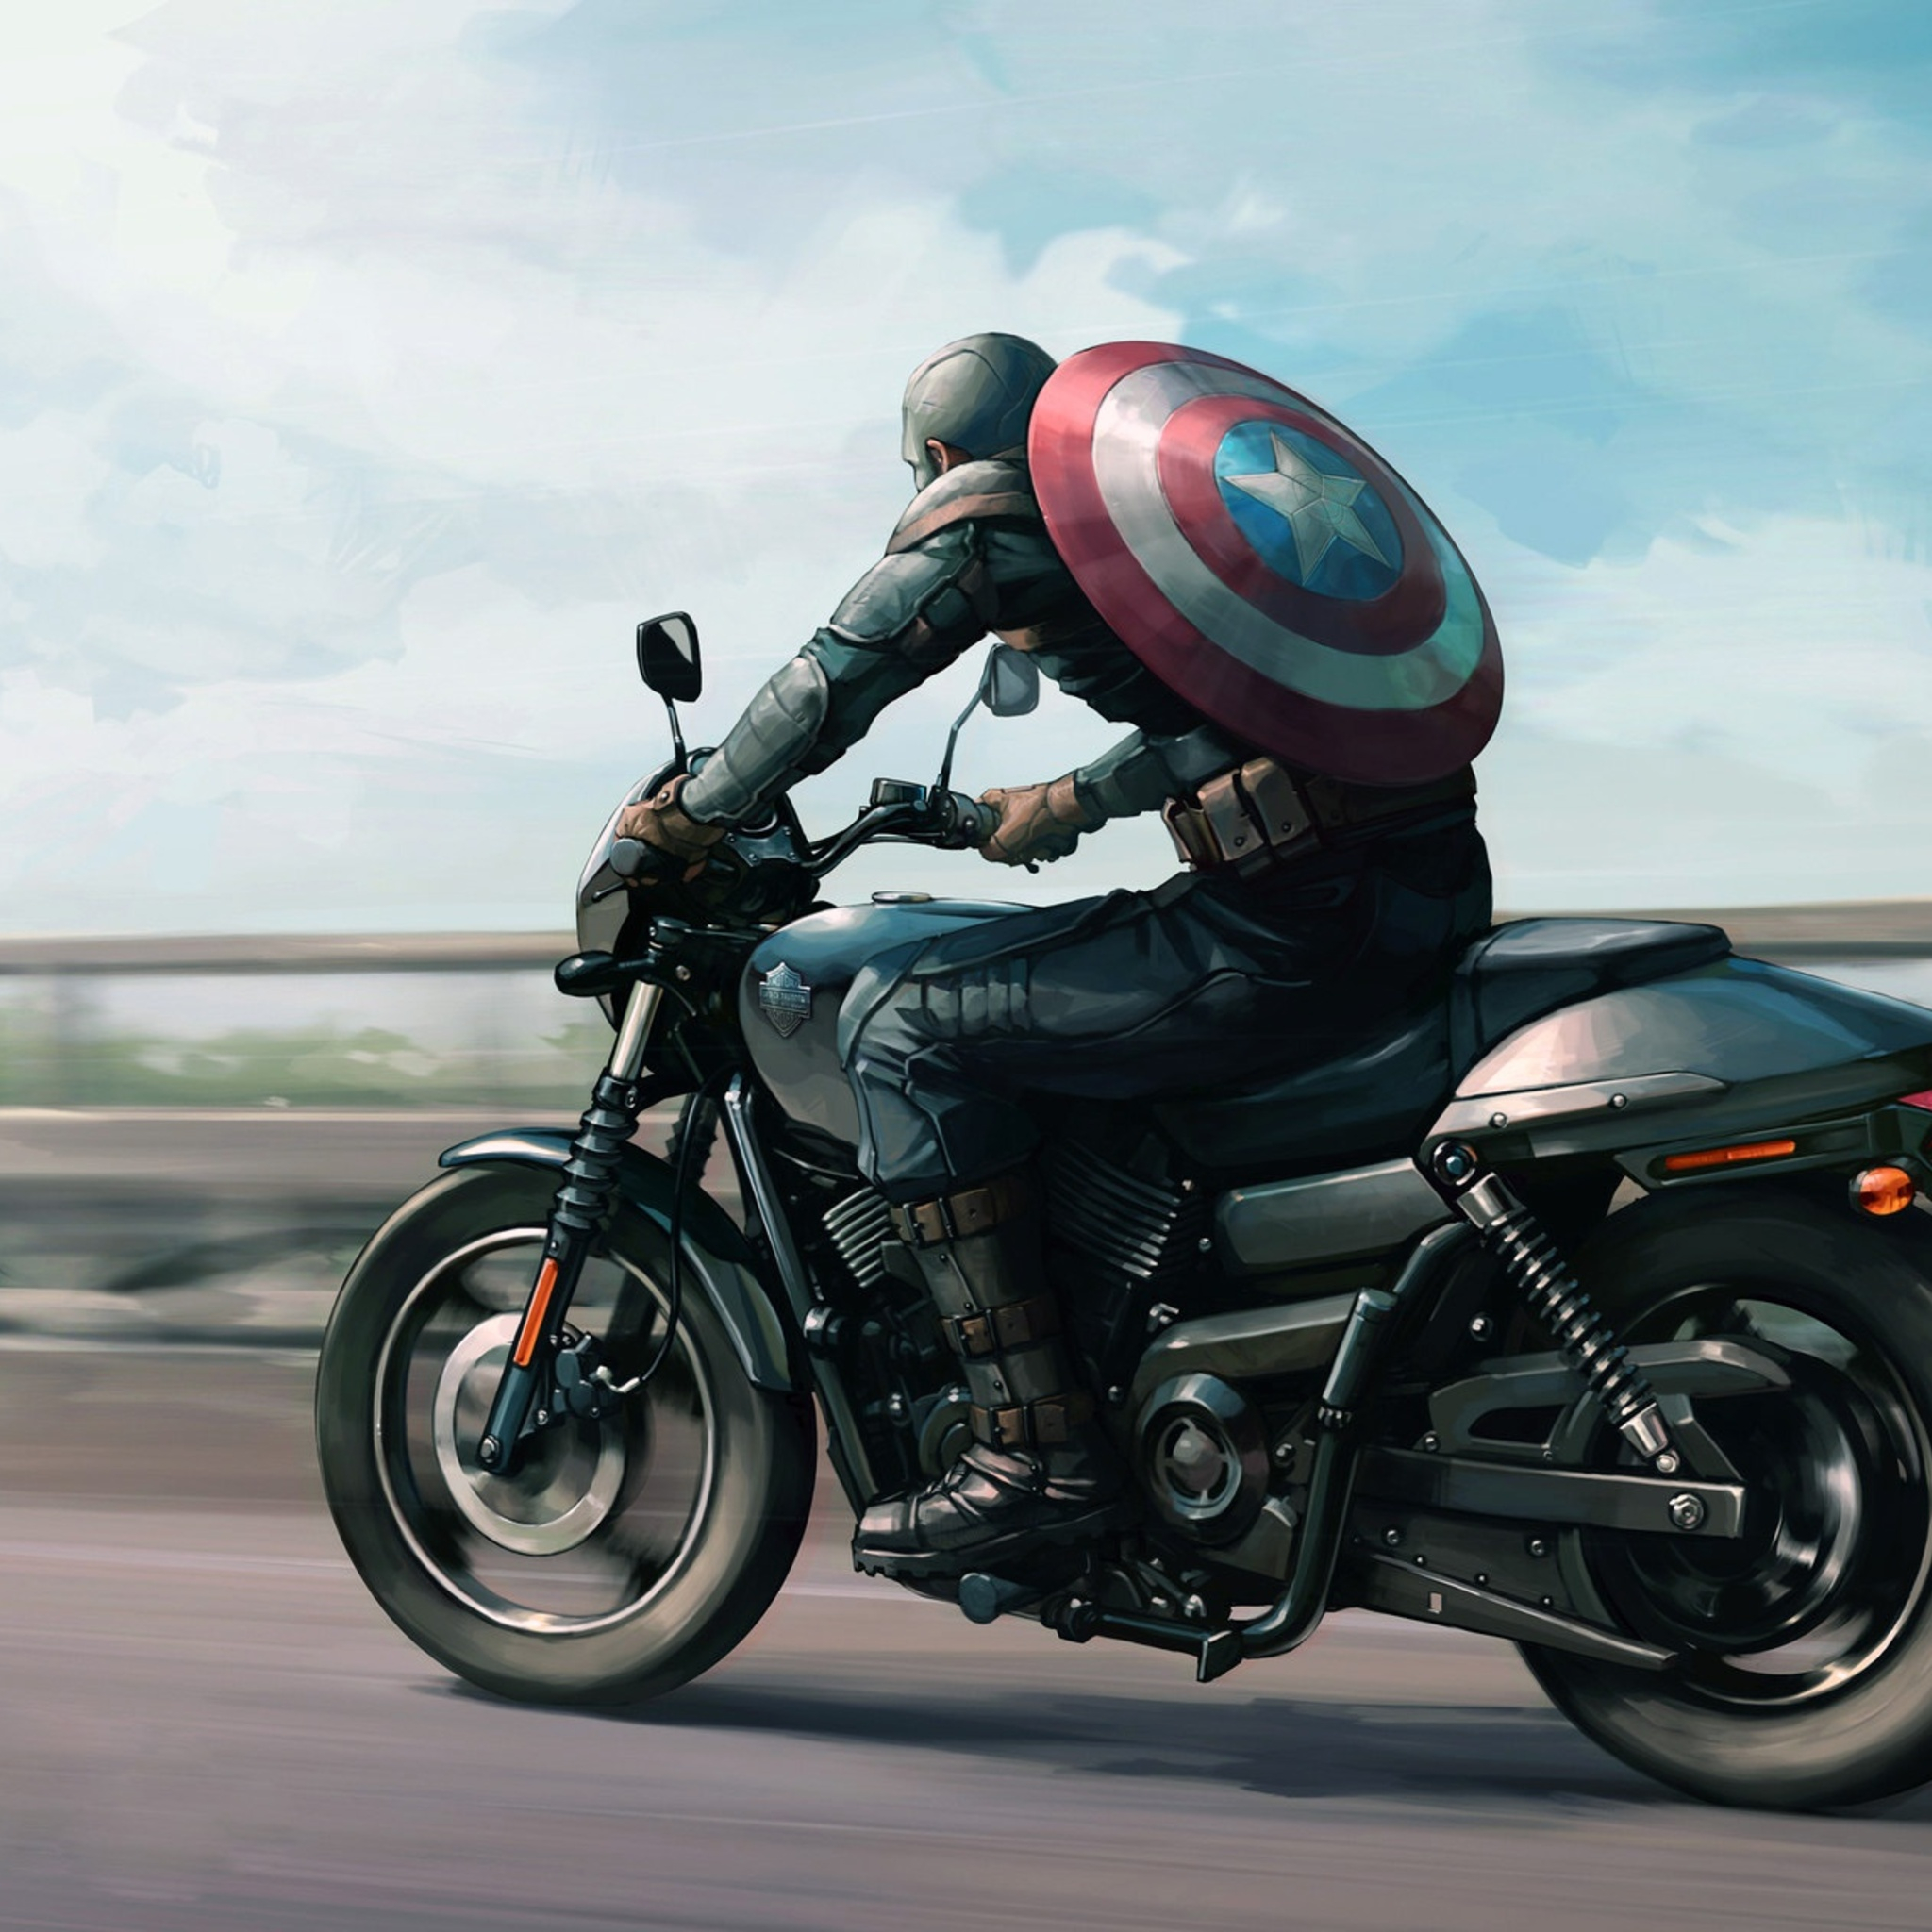 captain america on harley davidson motorcycle artwork qj 2048x2048